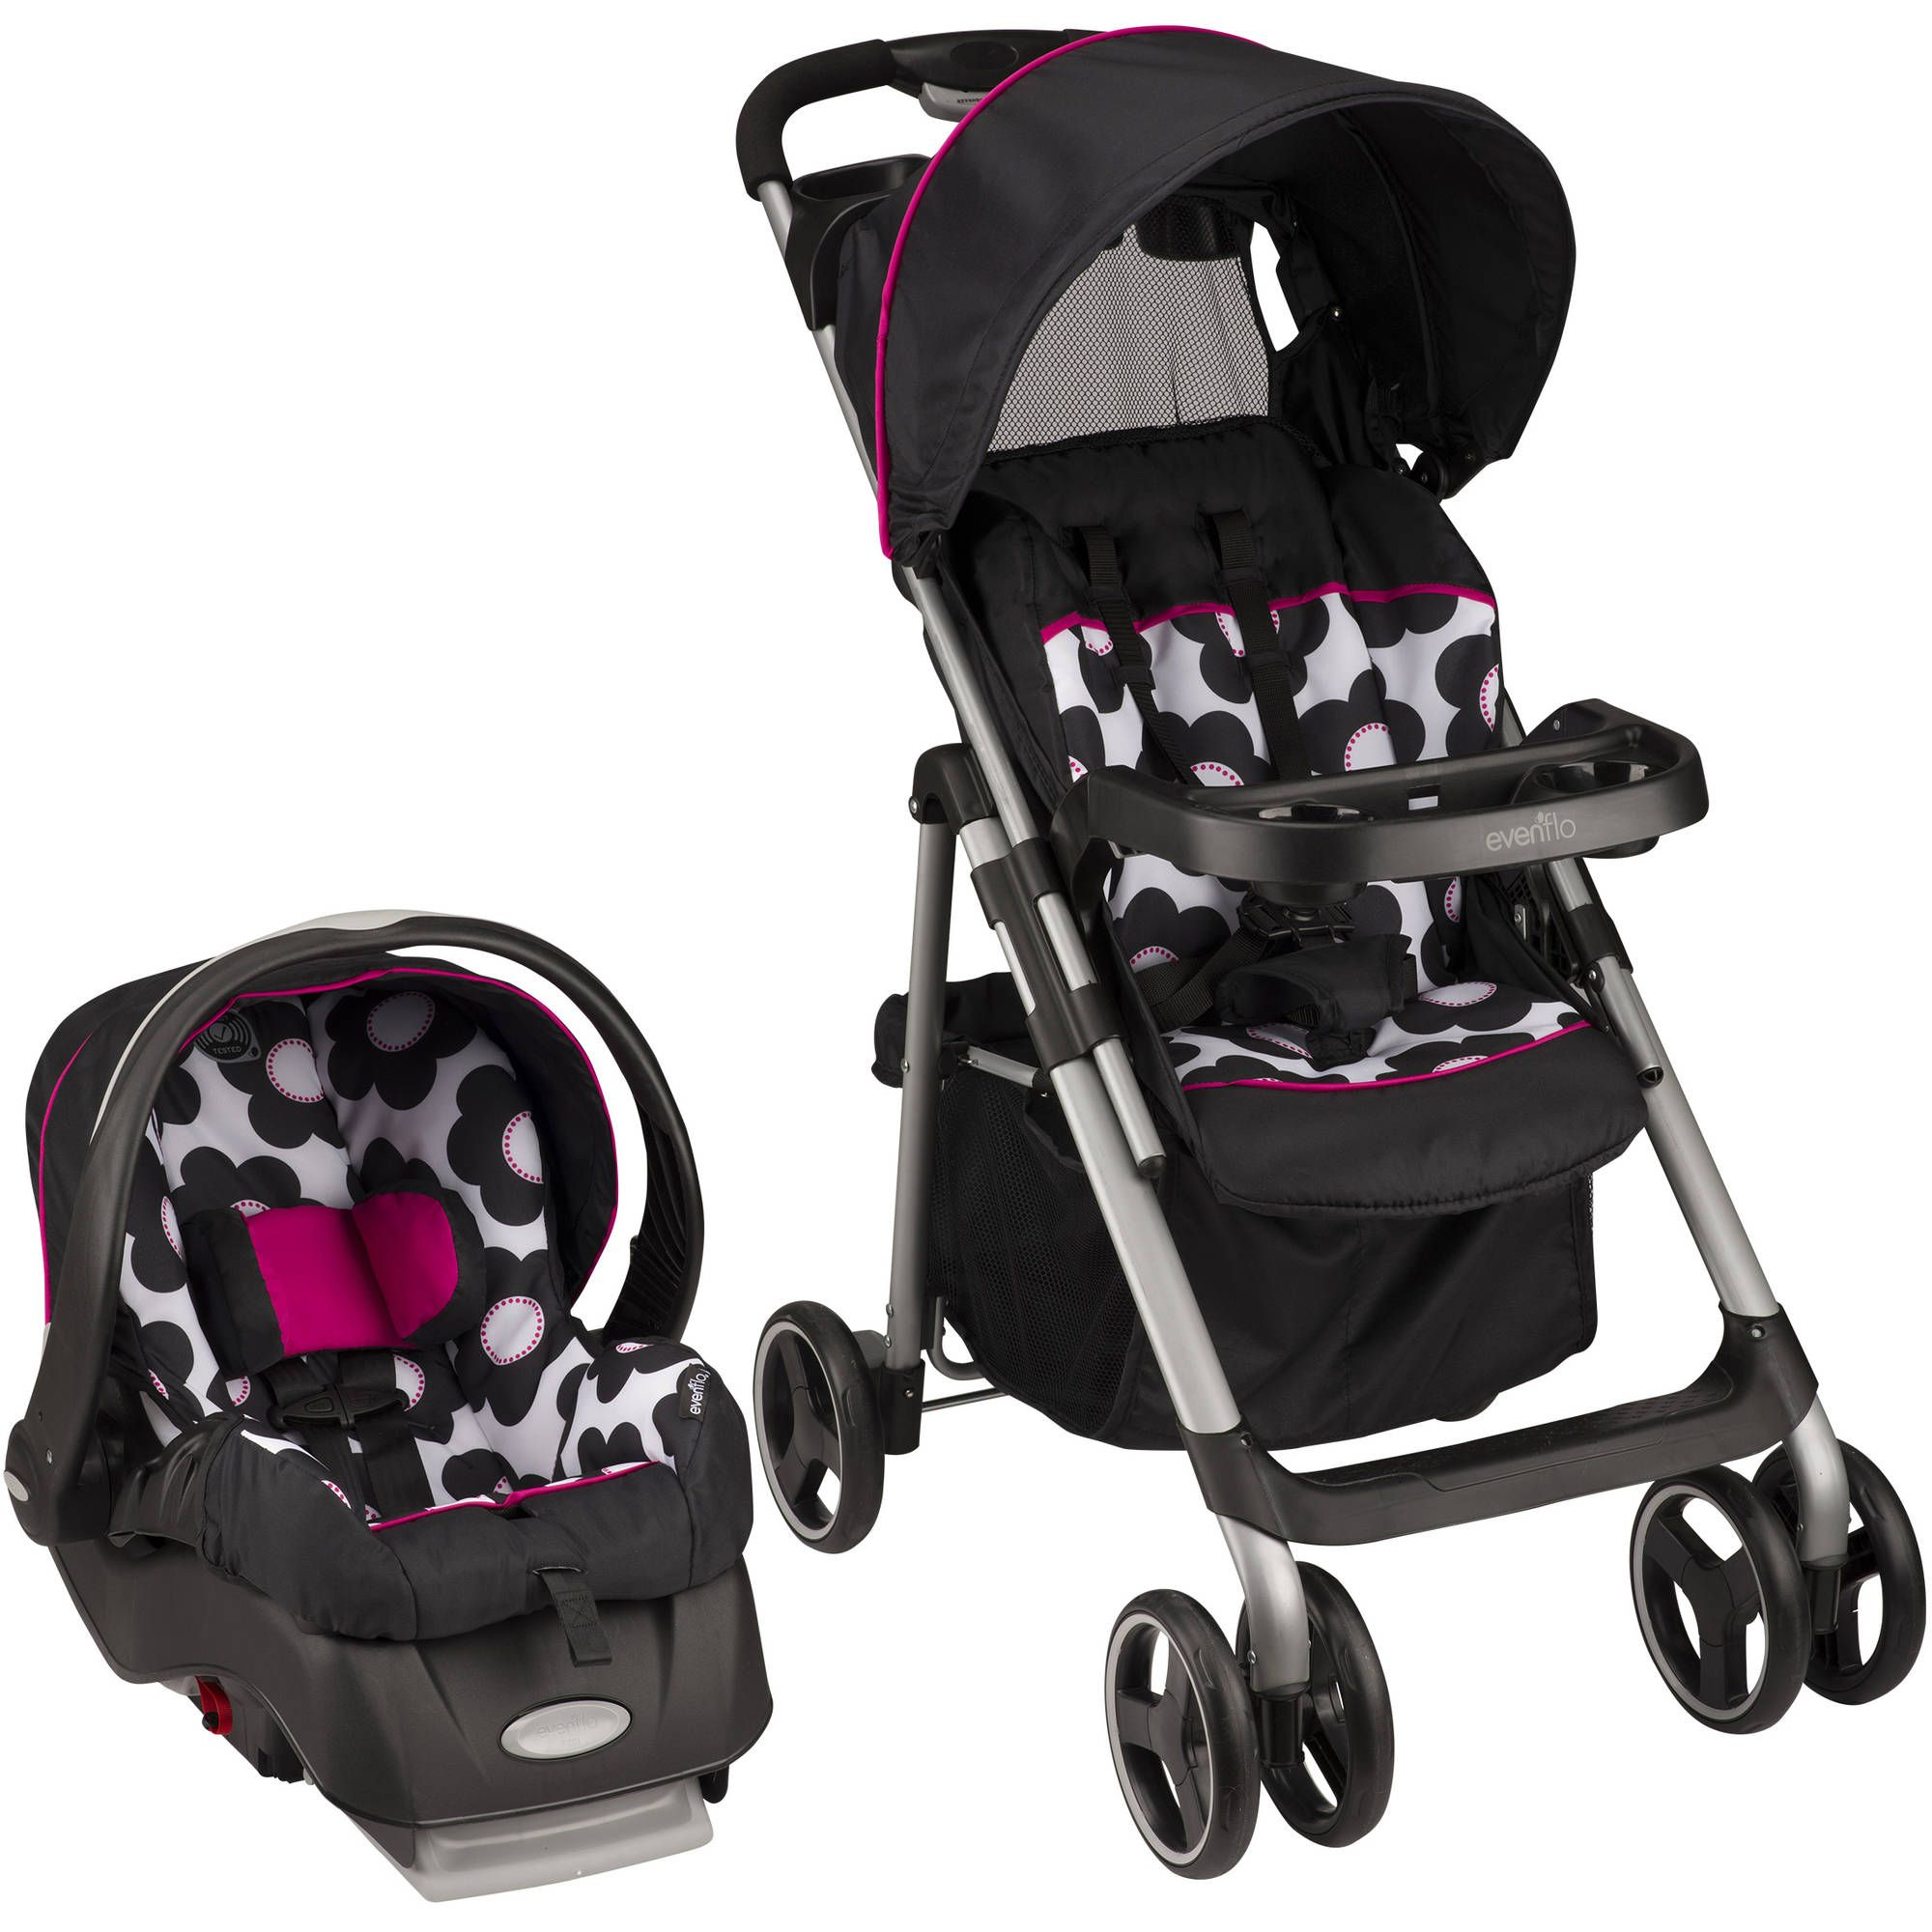 The First Years Jet Stroller Naturalization (Black